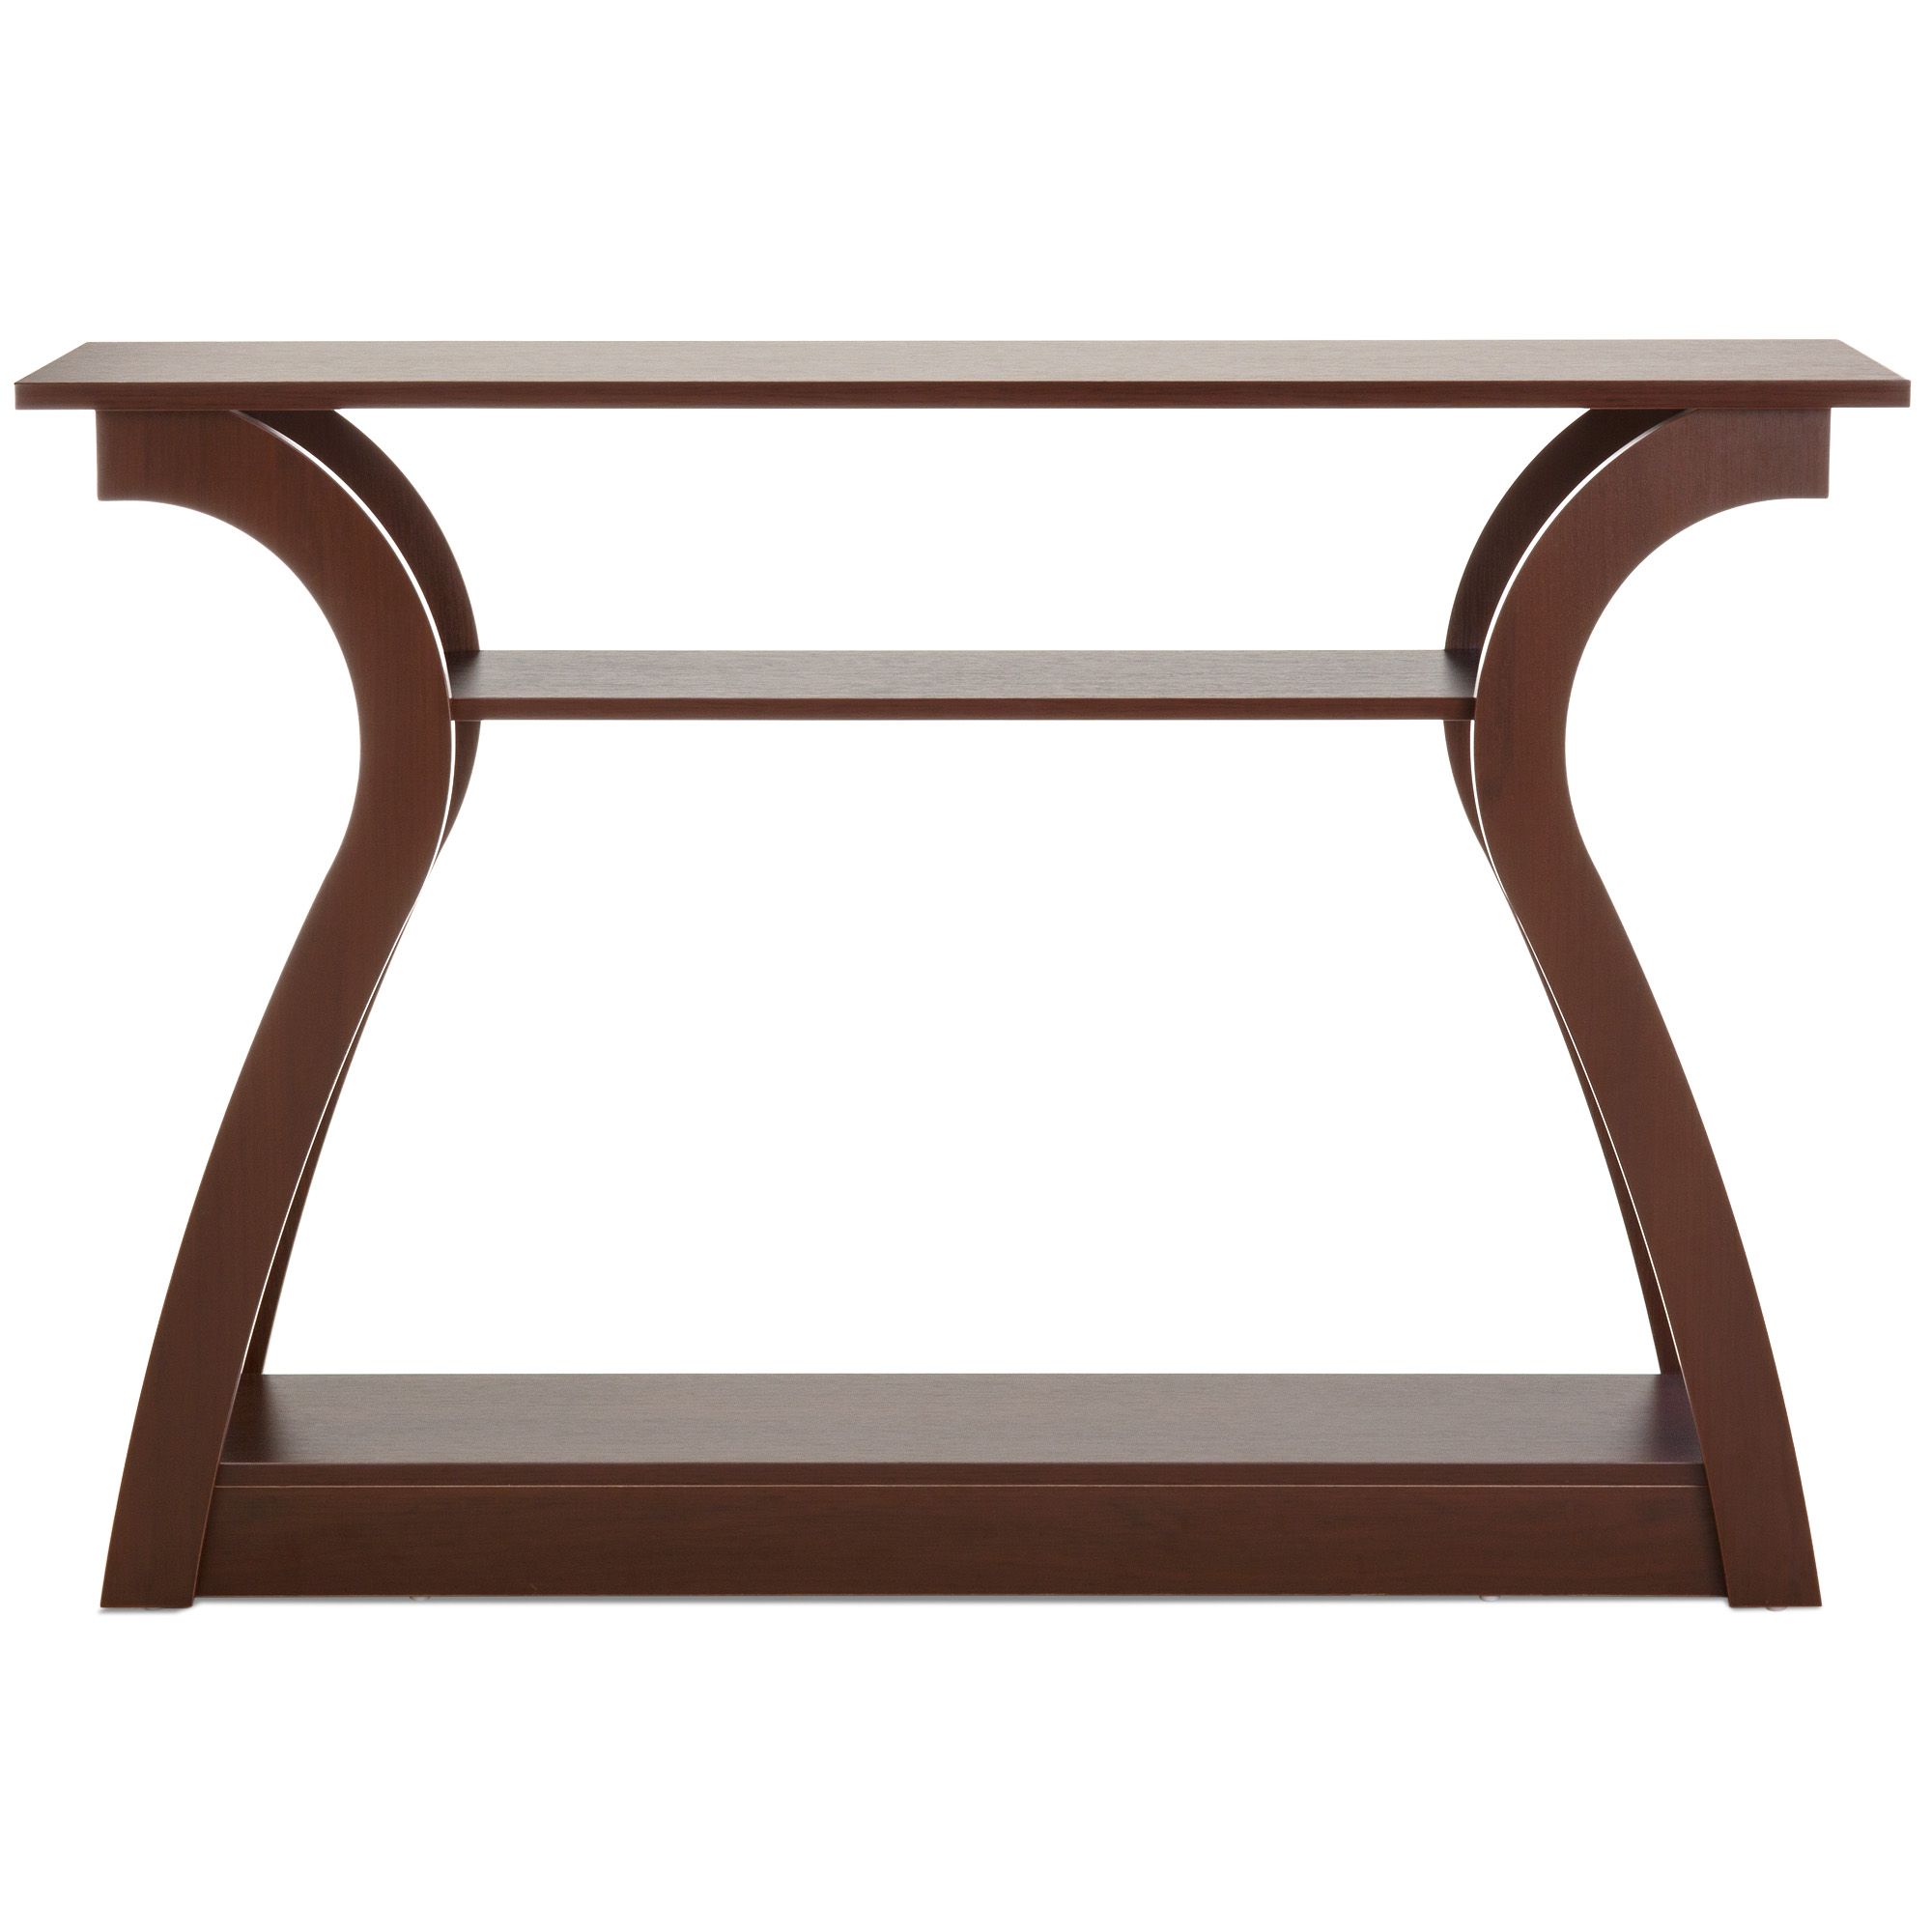 best choice products shelf modern decorative console accent table furniture for entryway living room brown lamb chair and set stackable end tables solid wood outside patio cover